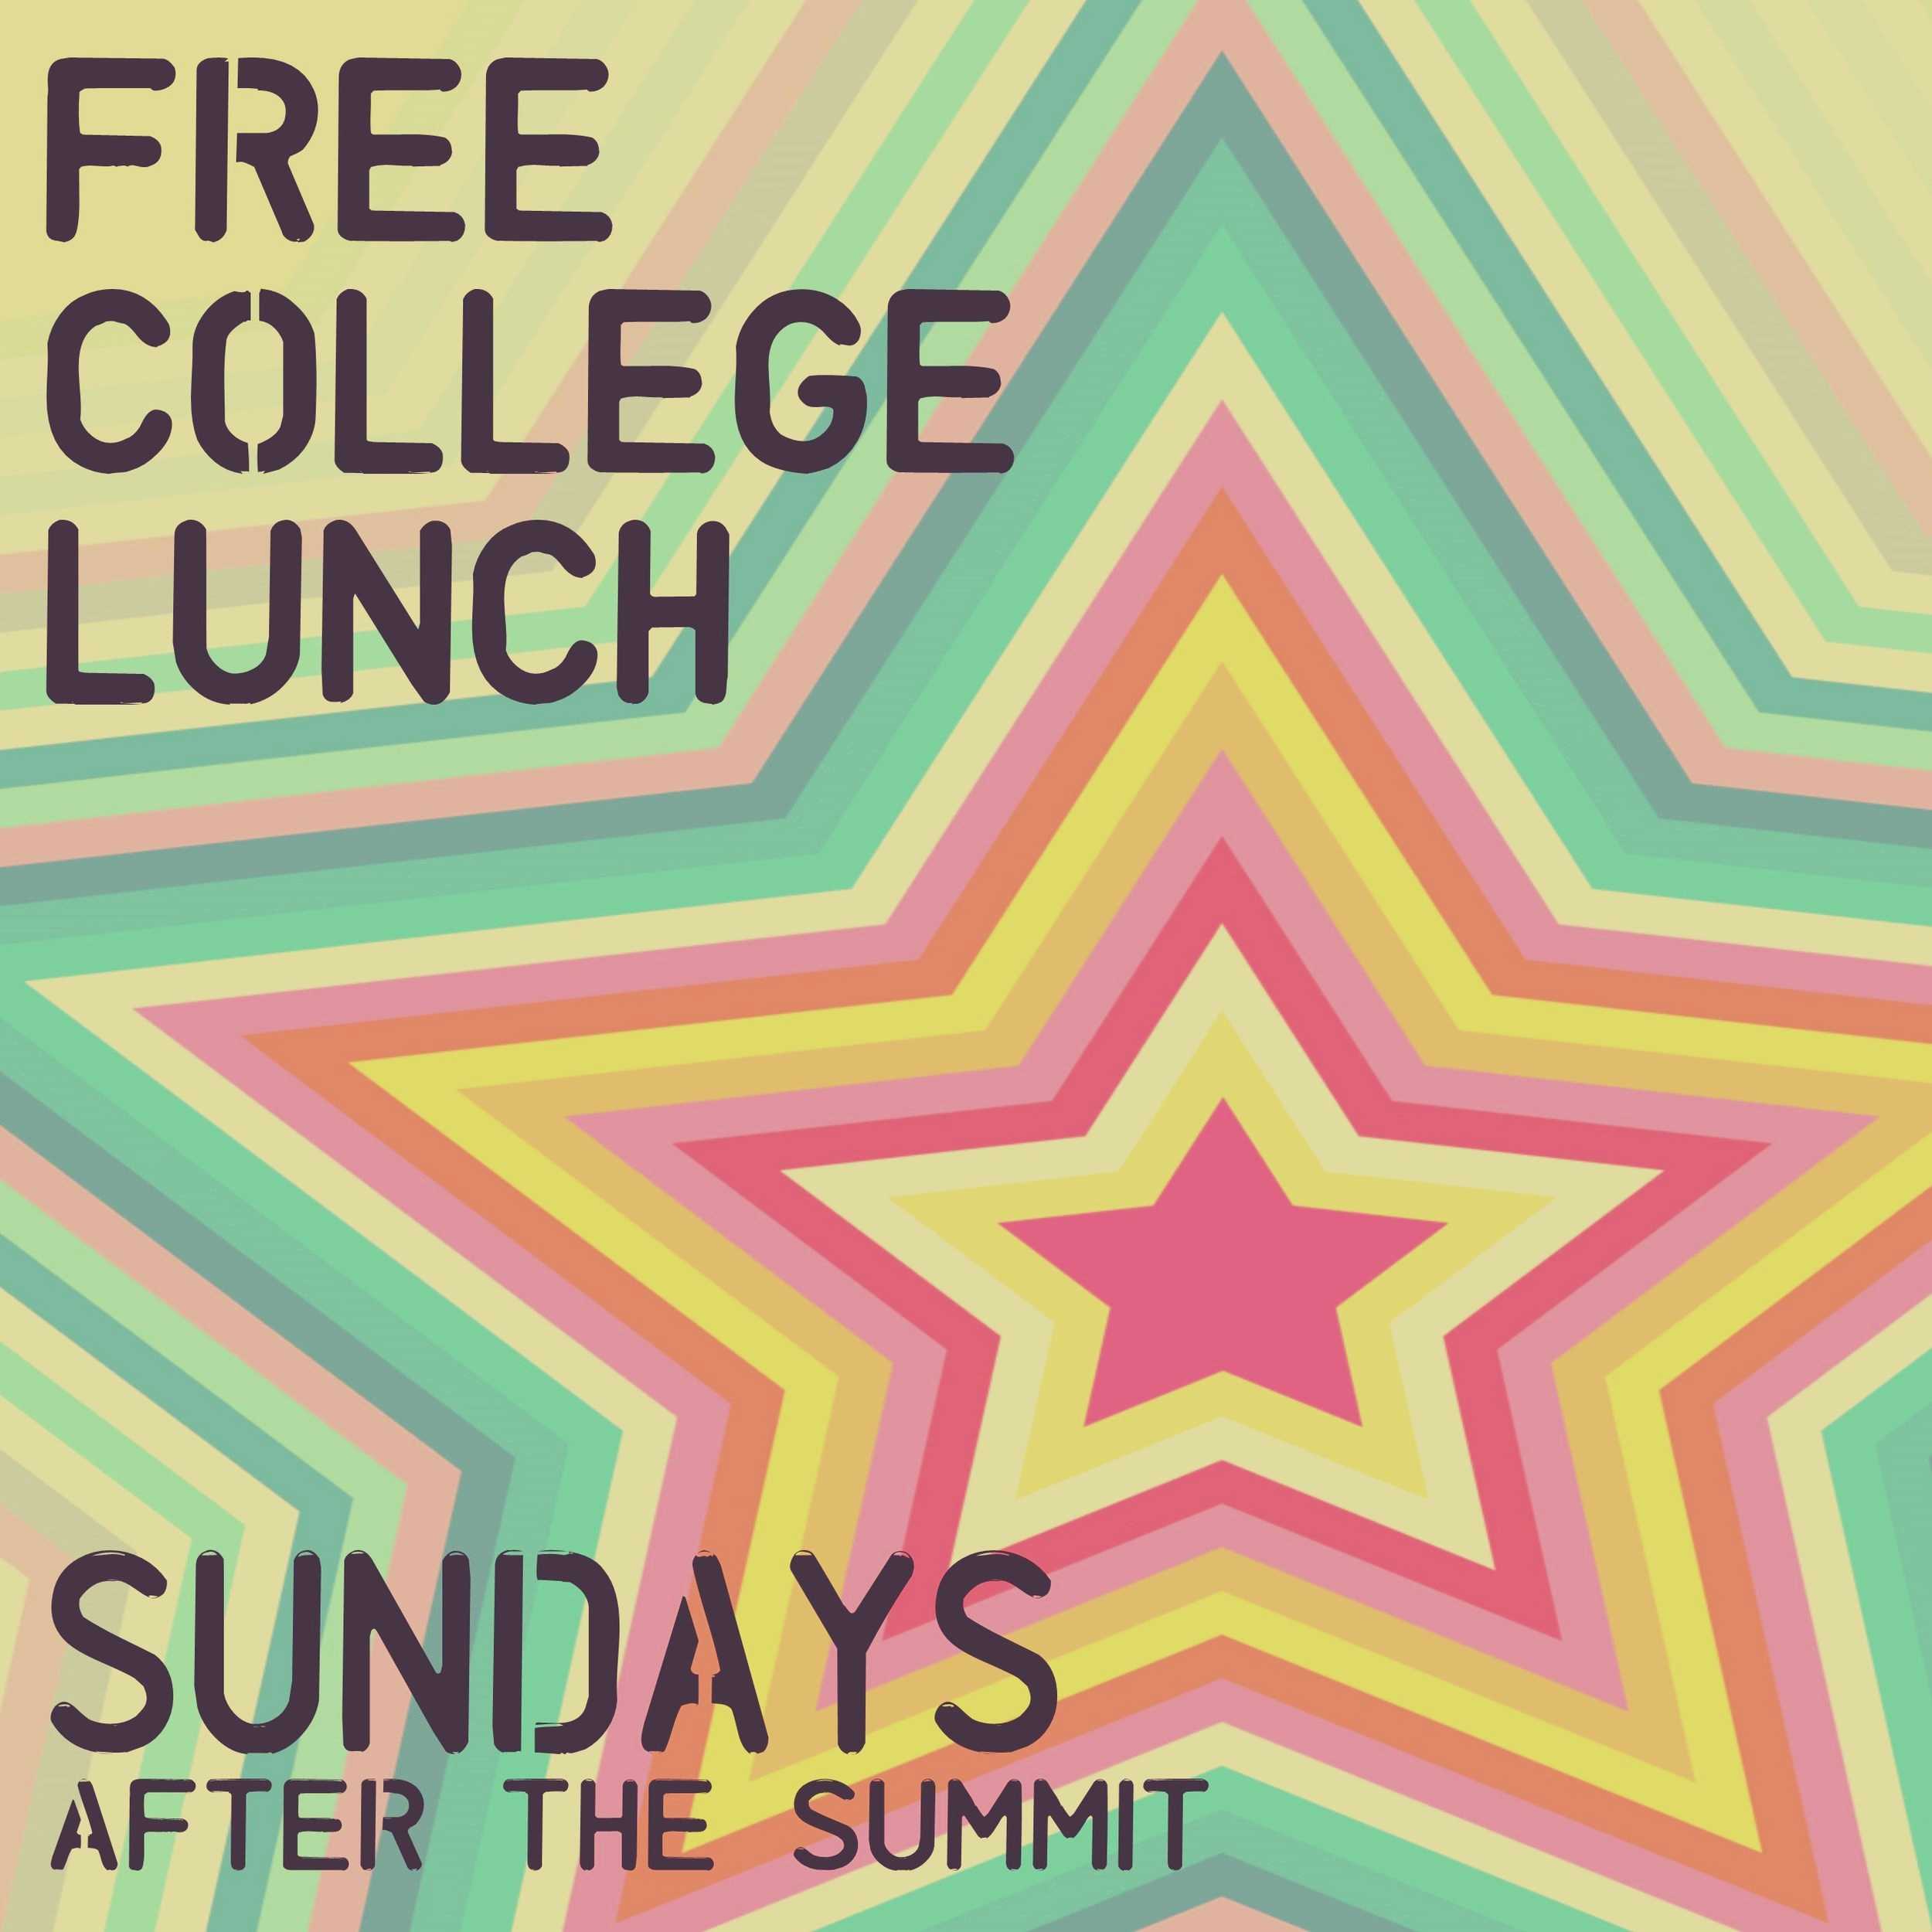 Free College Lunch revised  Insta 081018.jpg